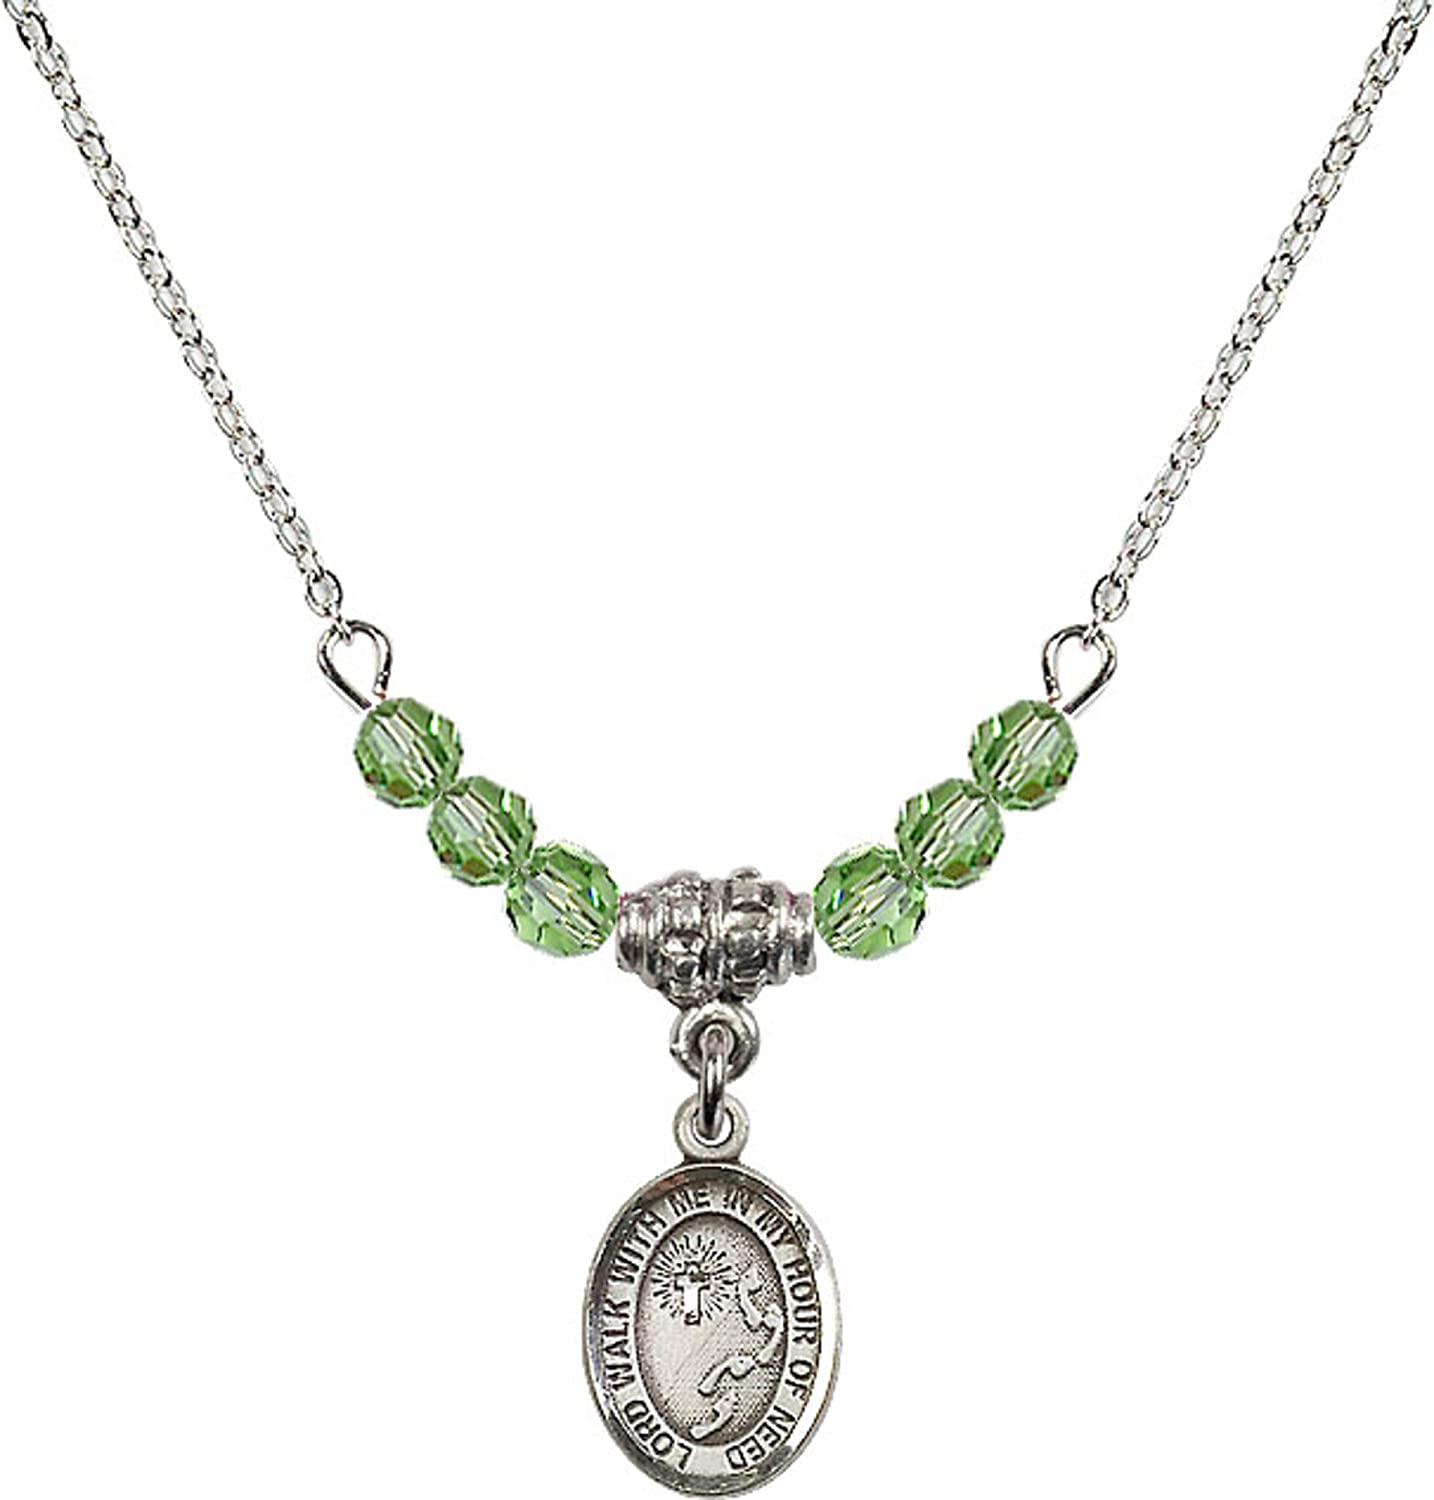 Bonyak Jewelry 18 Inch Rhodium Plated Necklace w// 4mm Green August Birth Month Stone Beads and Footprints//Cross Charm